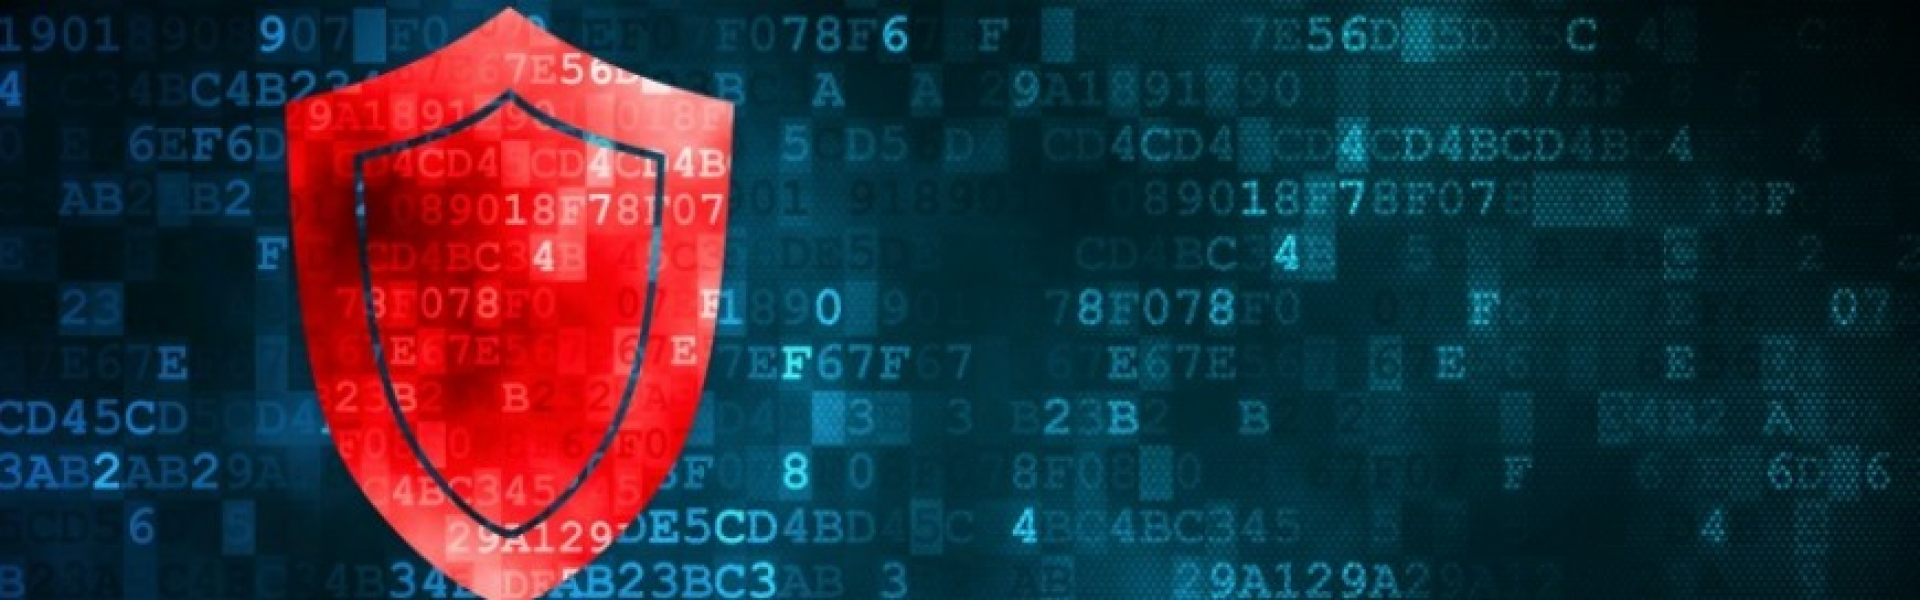 Securing healthcare data